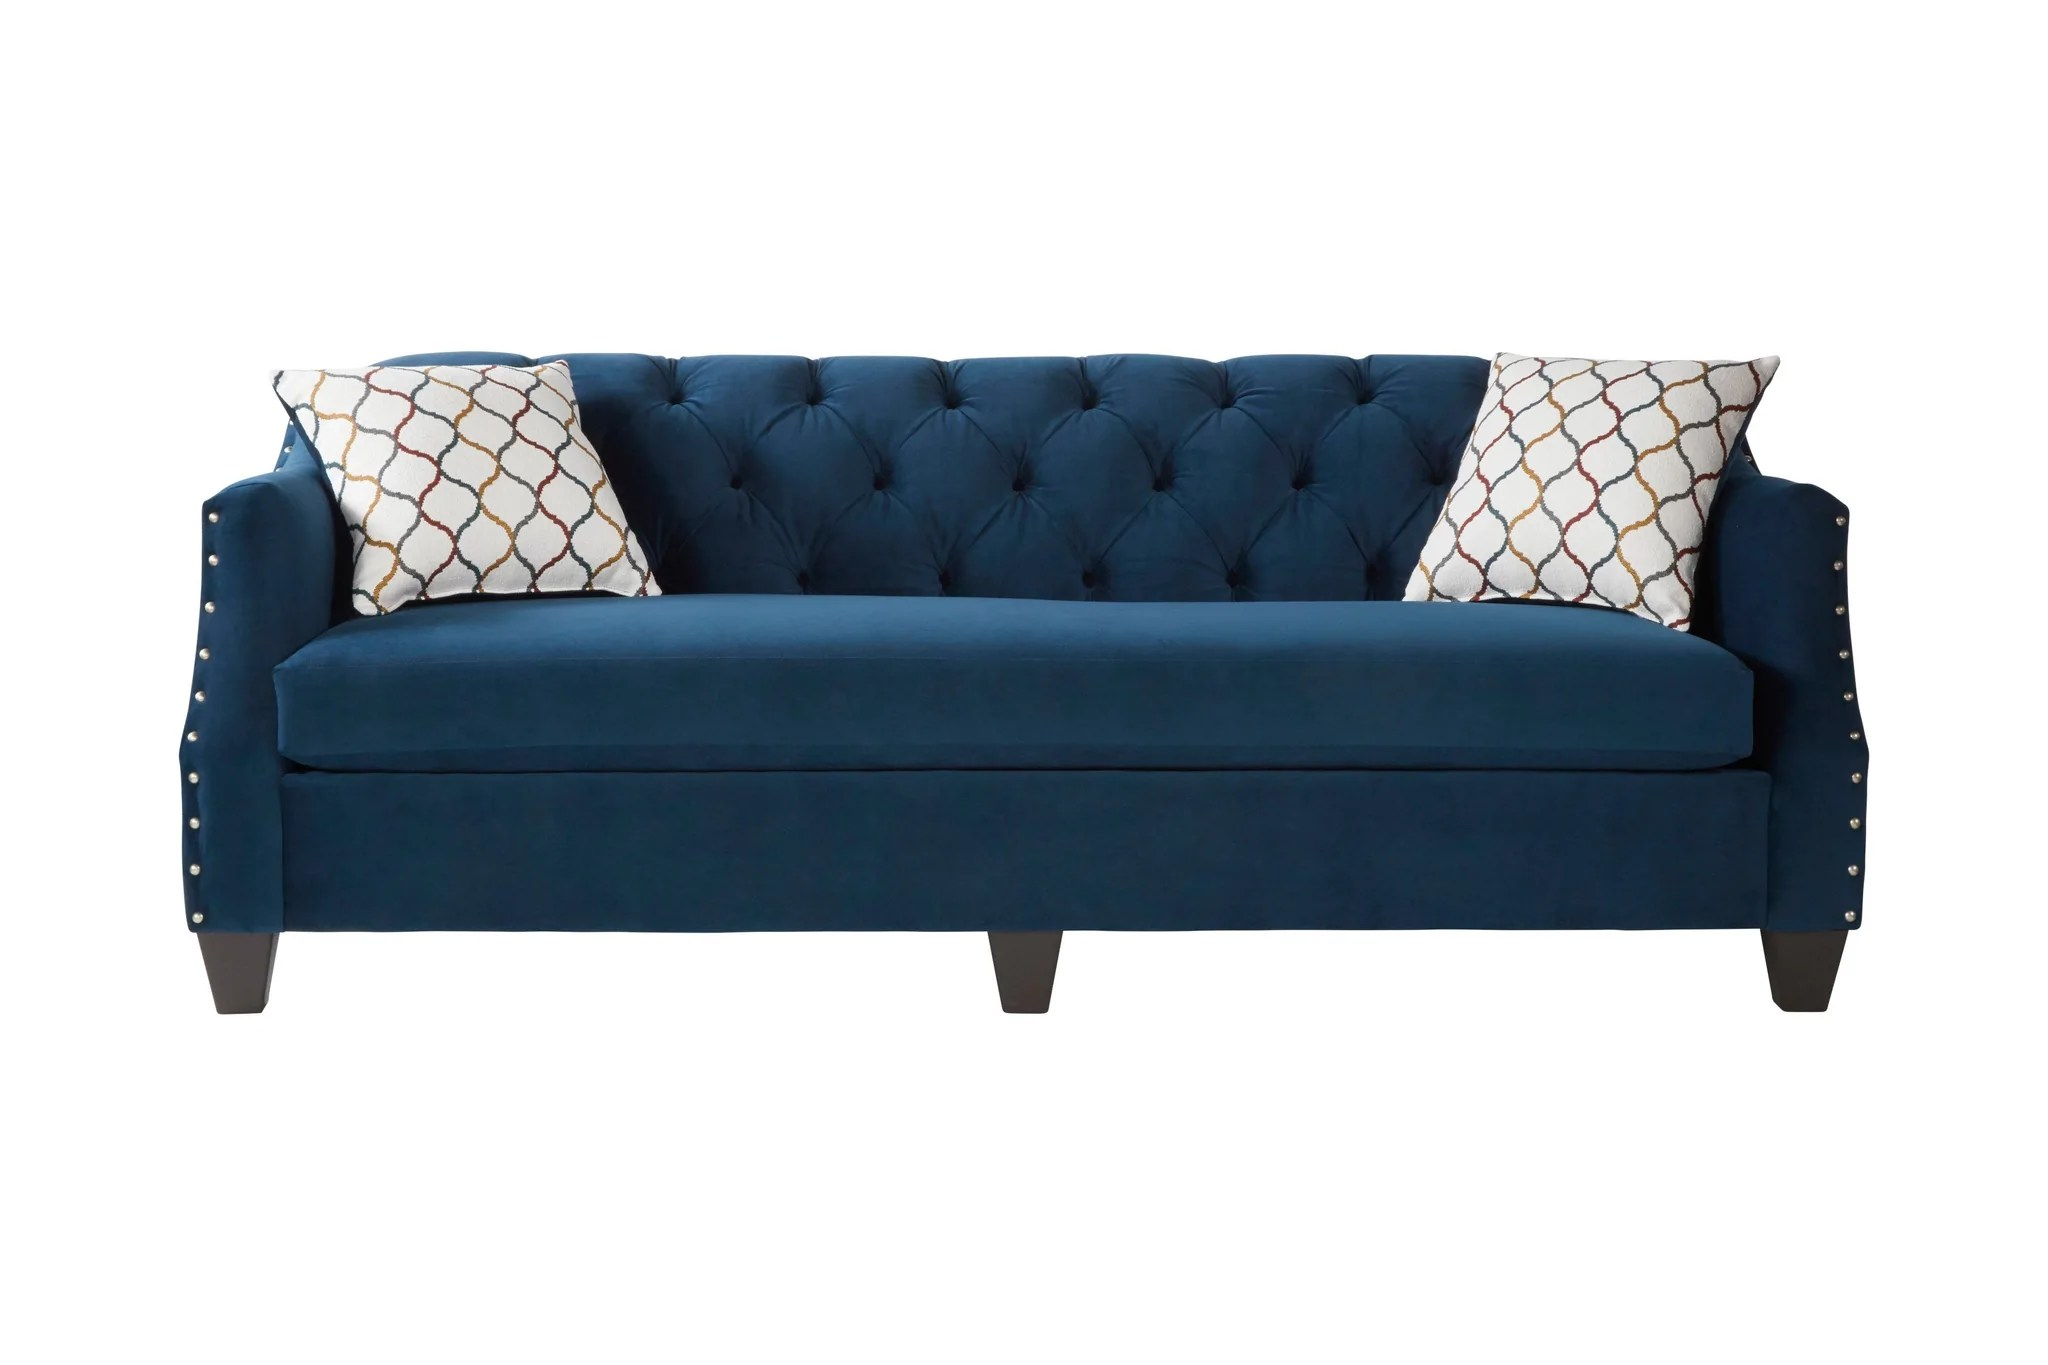 Moselle Transitional Modern Velvet Tufted Sofa With Nainhead Trim Blu Roundhill Furniture